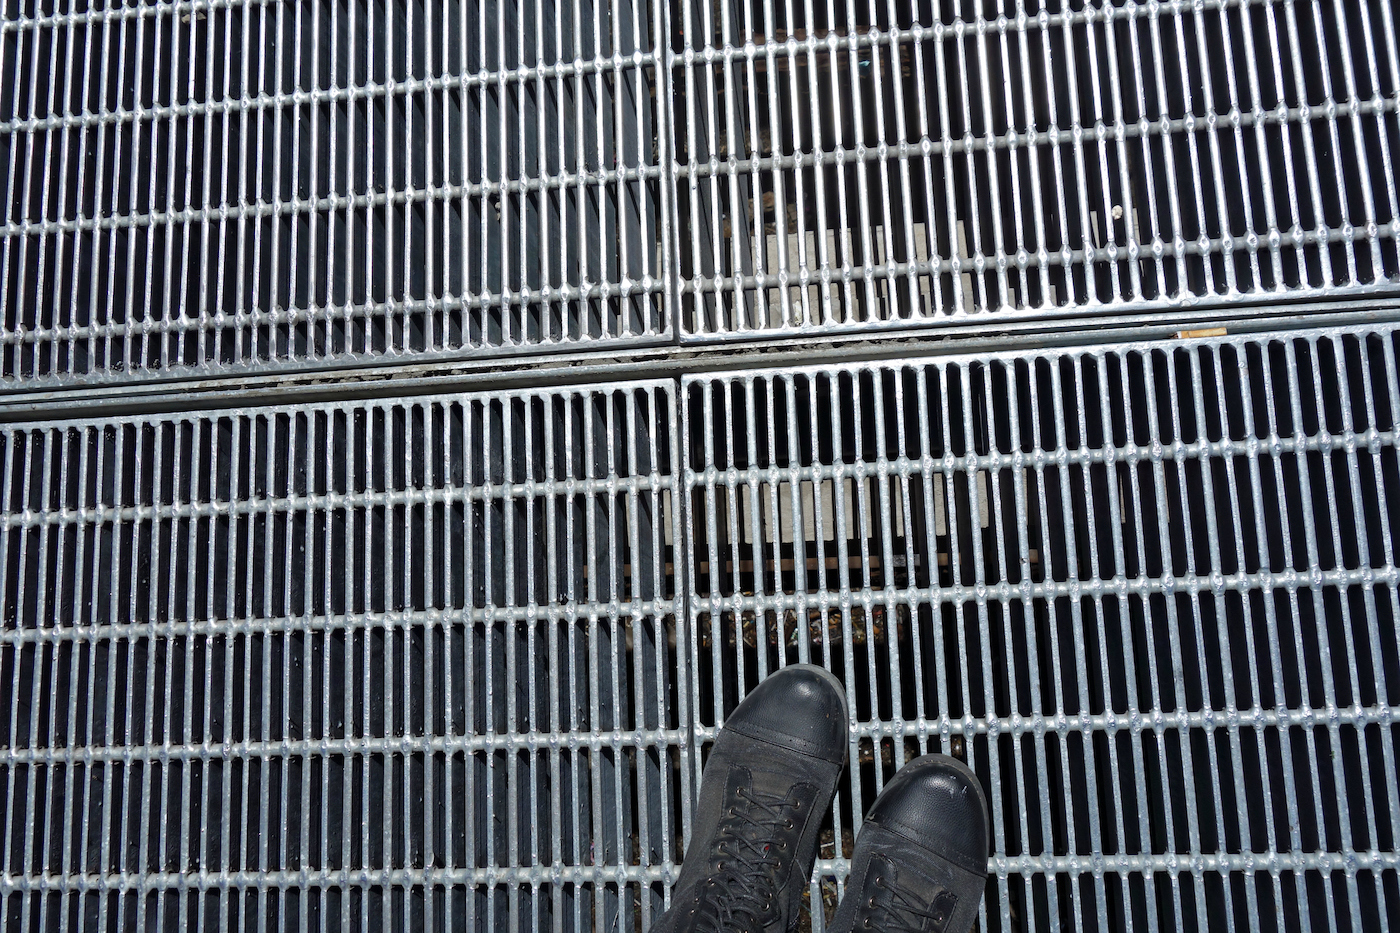 The grate in Times Square that houses Max Neuhaus's sound installation (photo by the author for Hyperallergic)